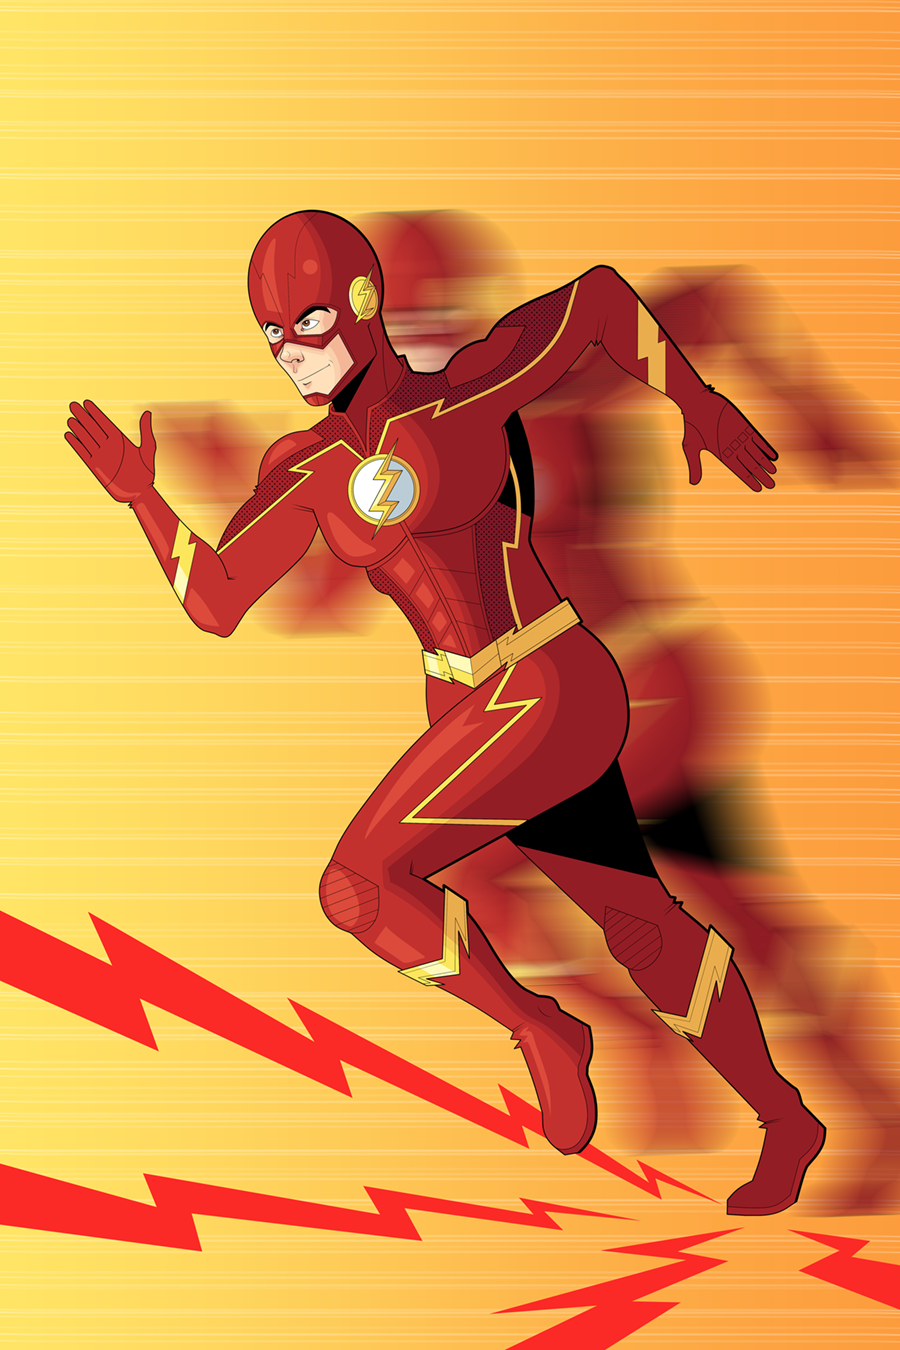 banner transparent download The costume by owenoak. Drawing flash season 4